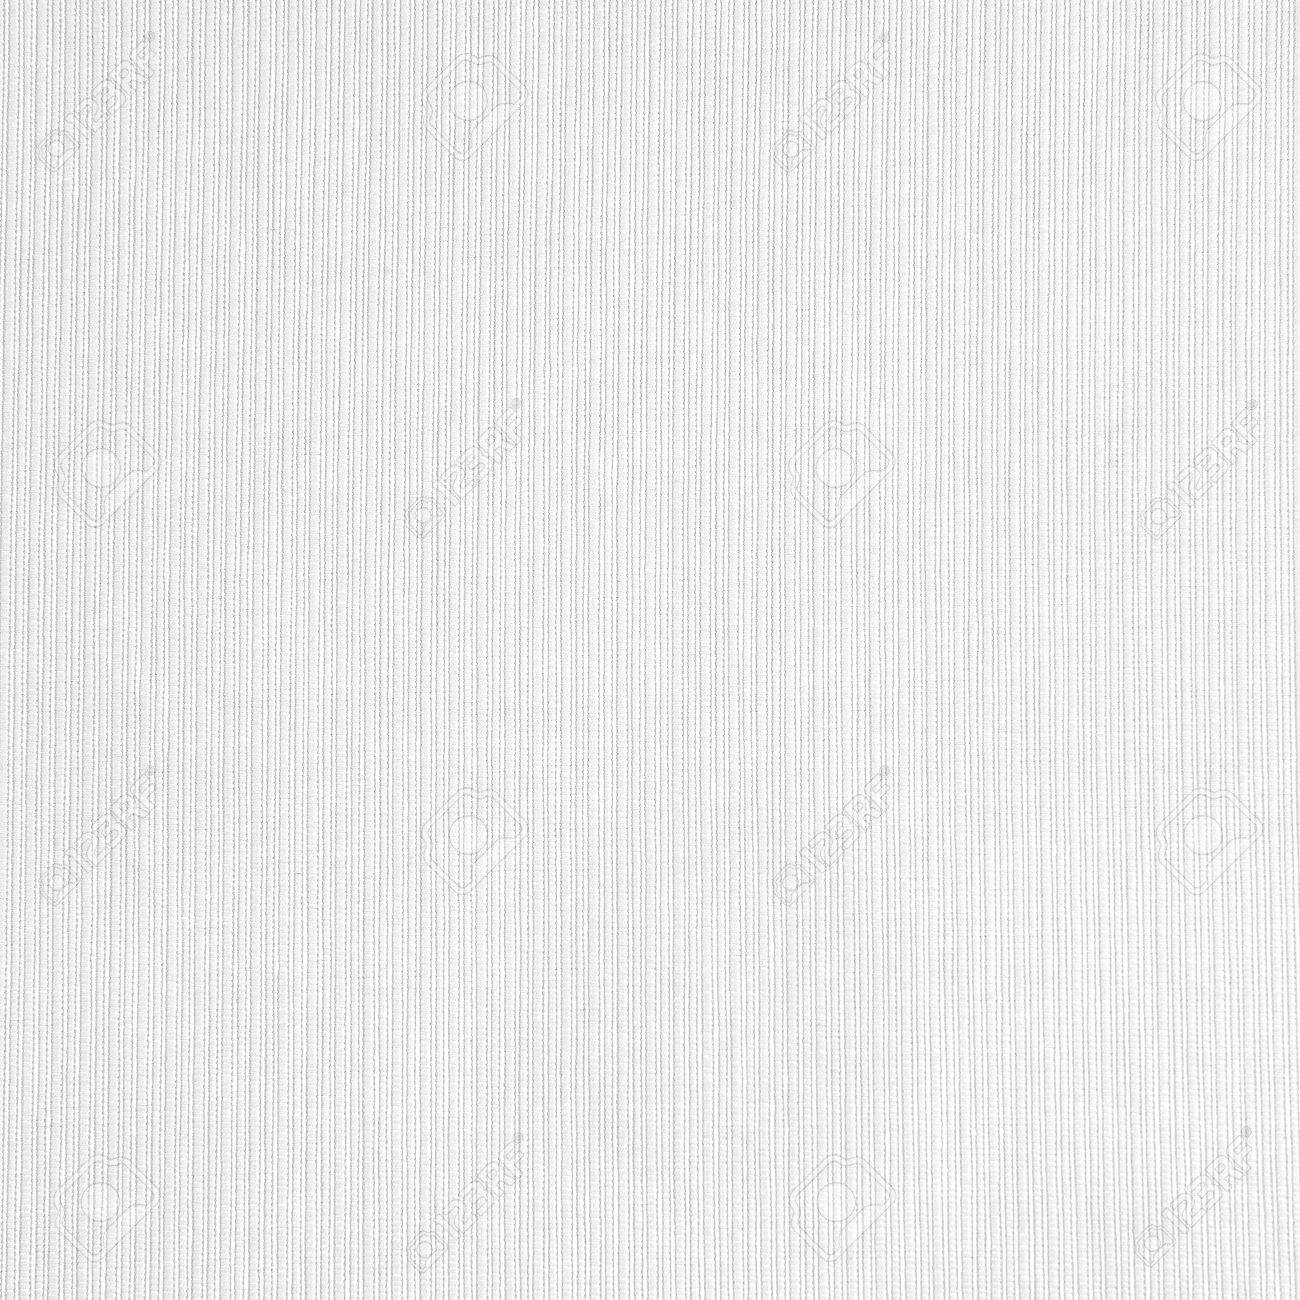 Background And Texture Of White Paper Pattern Stock Photo